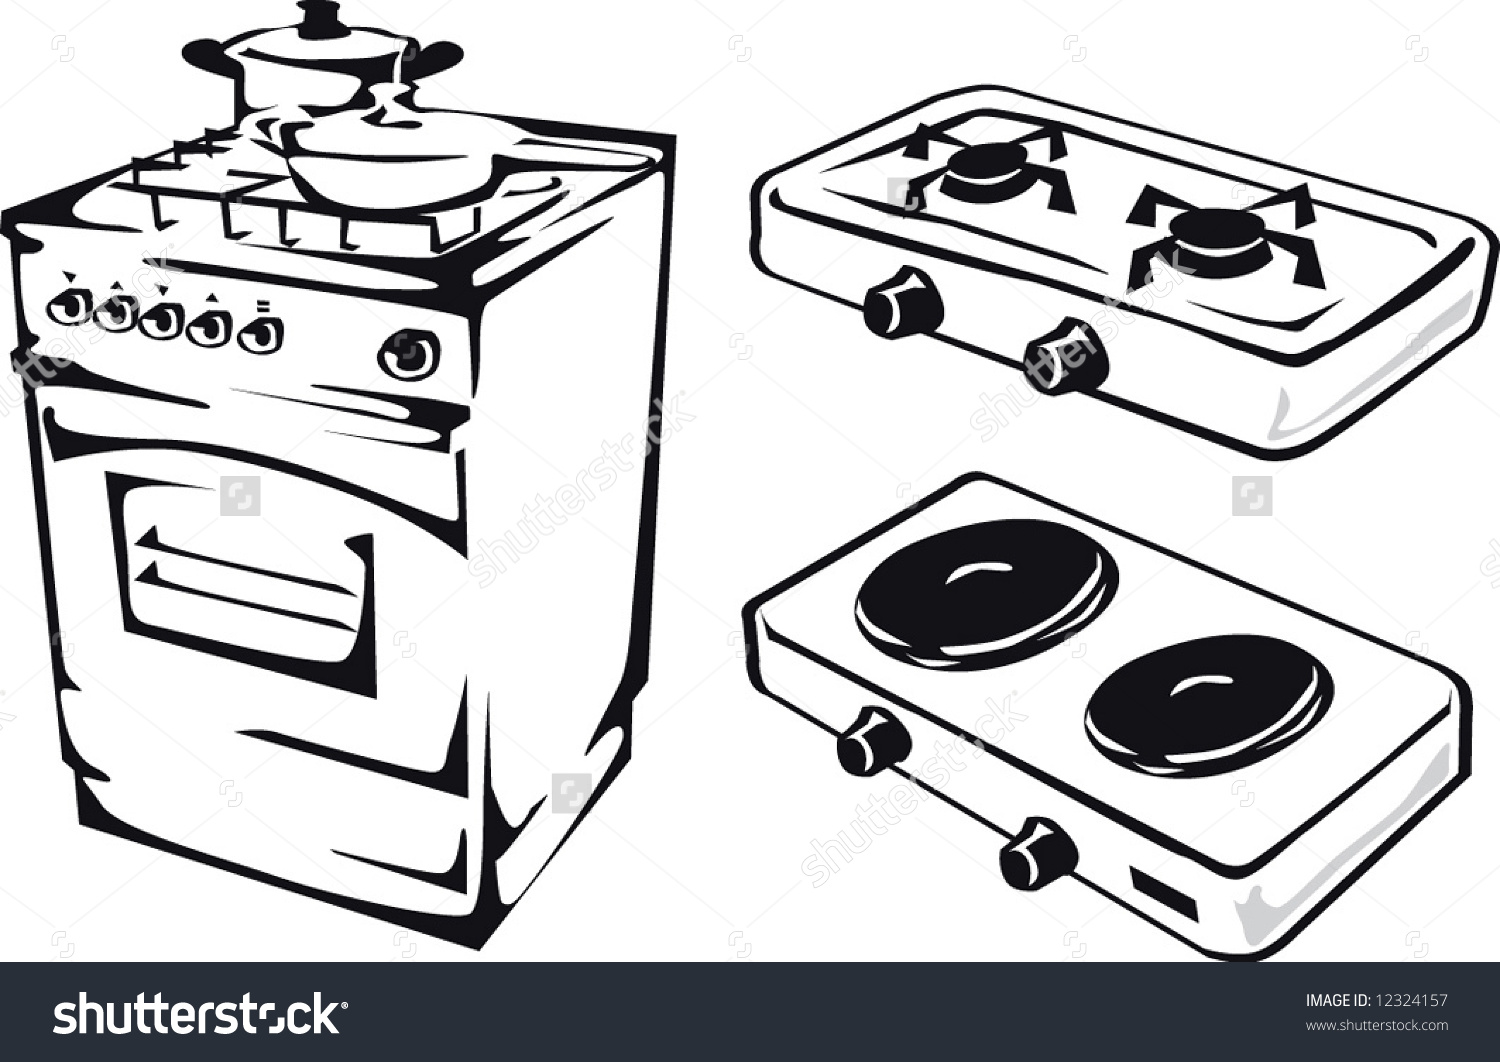 Stove clipart black and white 2 » Clipart Station.